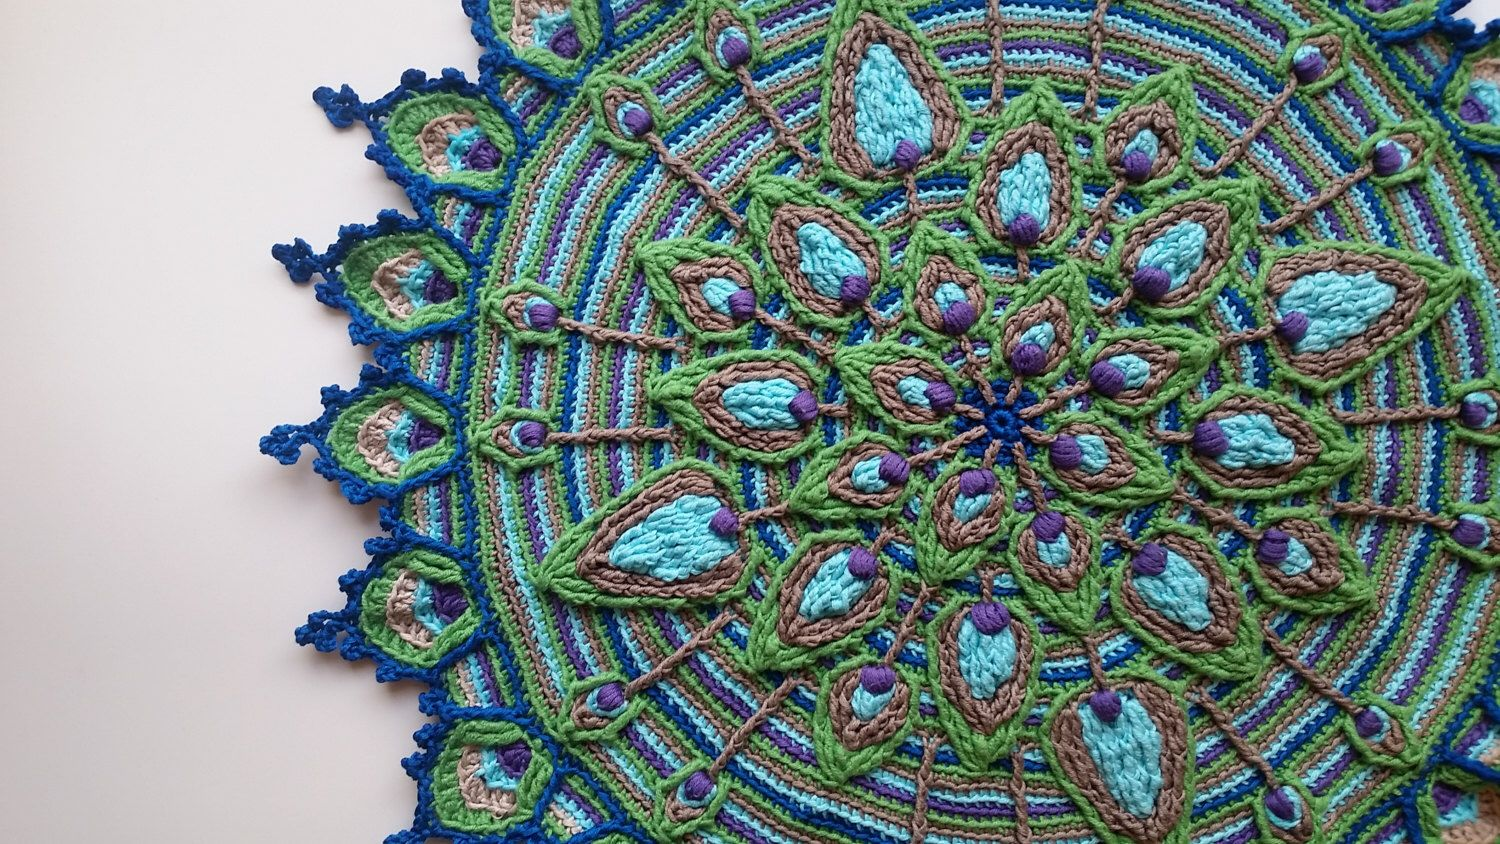 Overlay Crochet Peacock Feather Mandala Pattern Crocheted Home